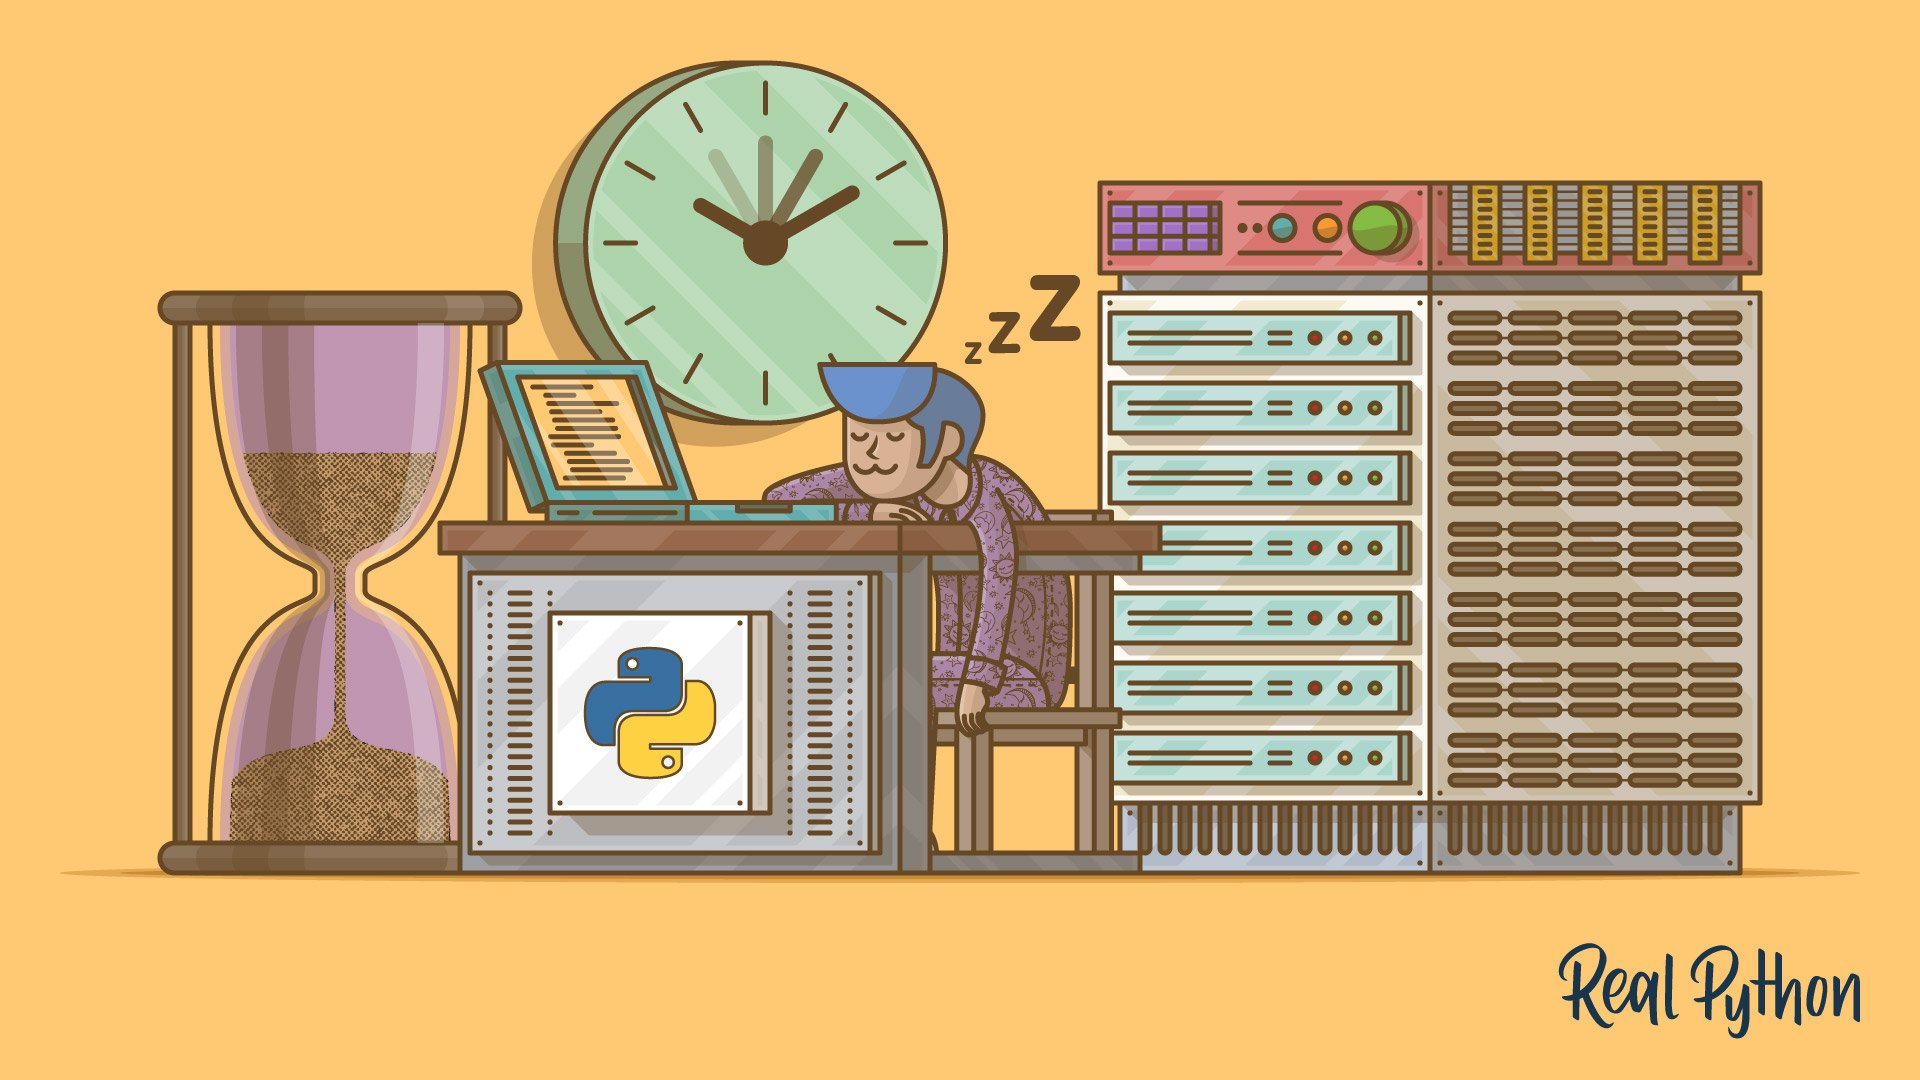 Python sleep(): How to Add Time Delays to Your Code